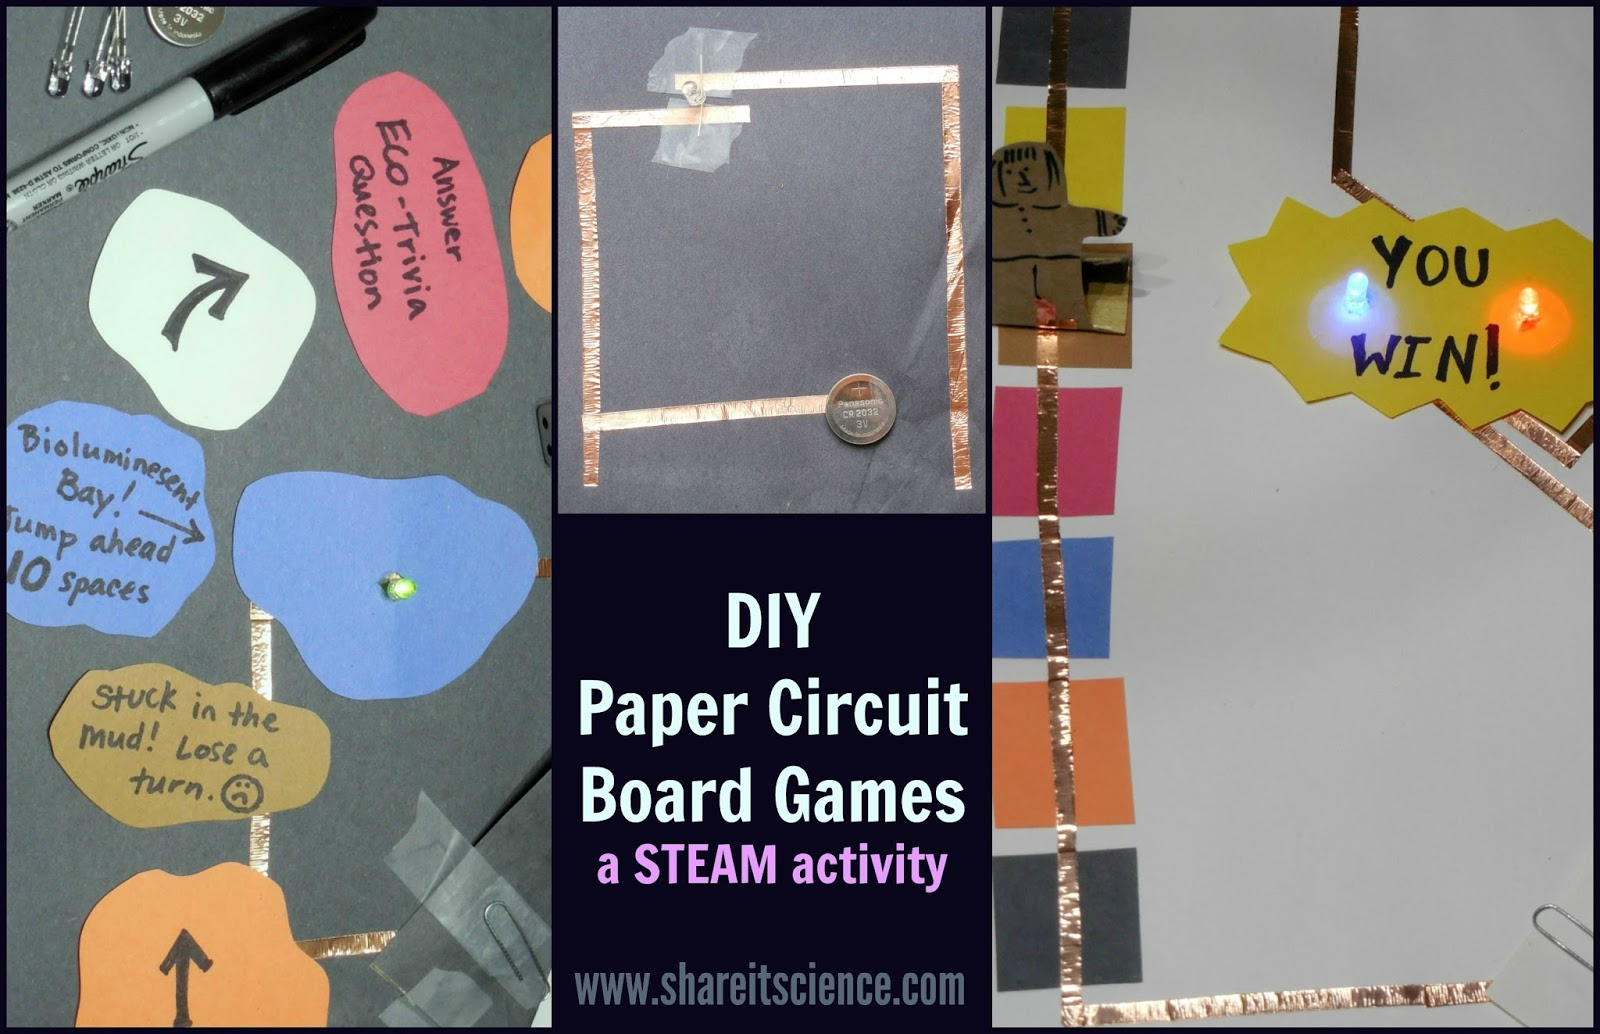 Share It Science Diy Paper Circuit Board Games